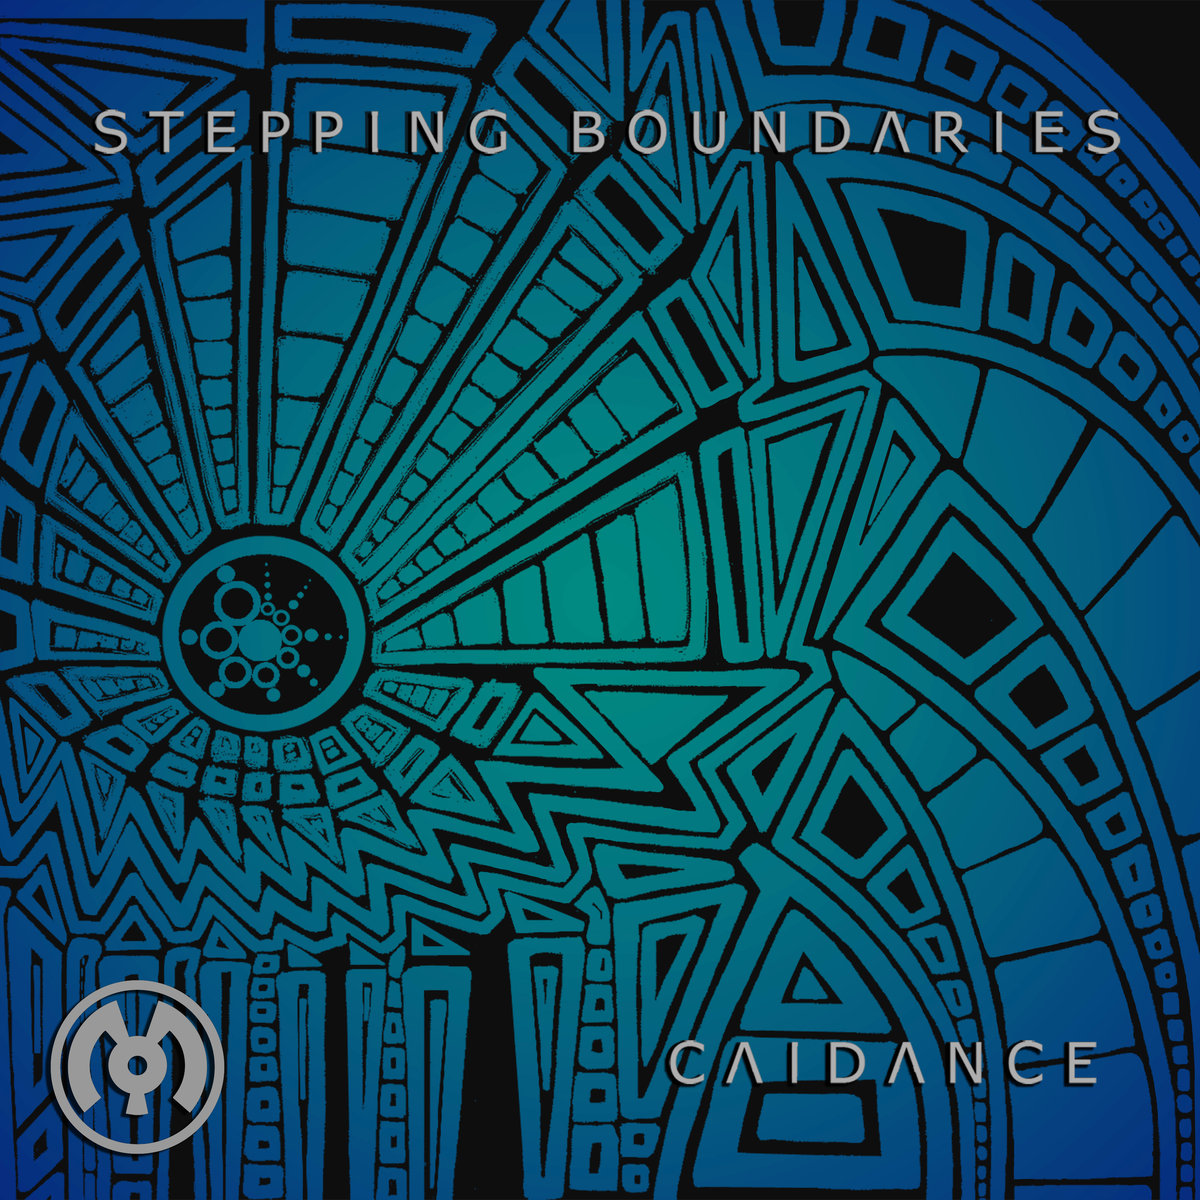 Caidance - Stepping Boundries (Deep Mix) @ 'Stepping Boundaries' album (electronic, dubstep)